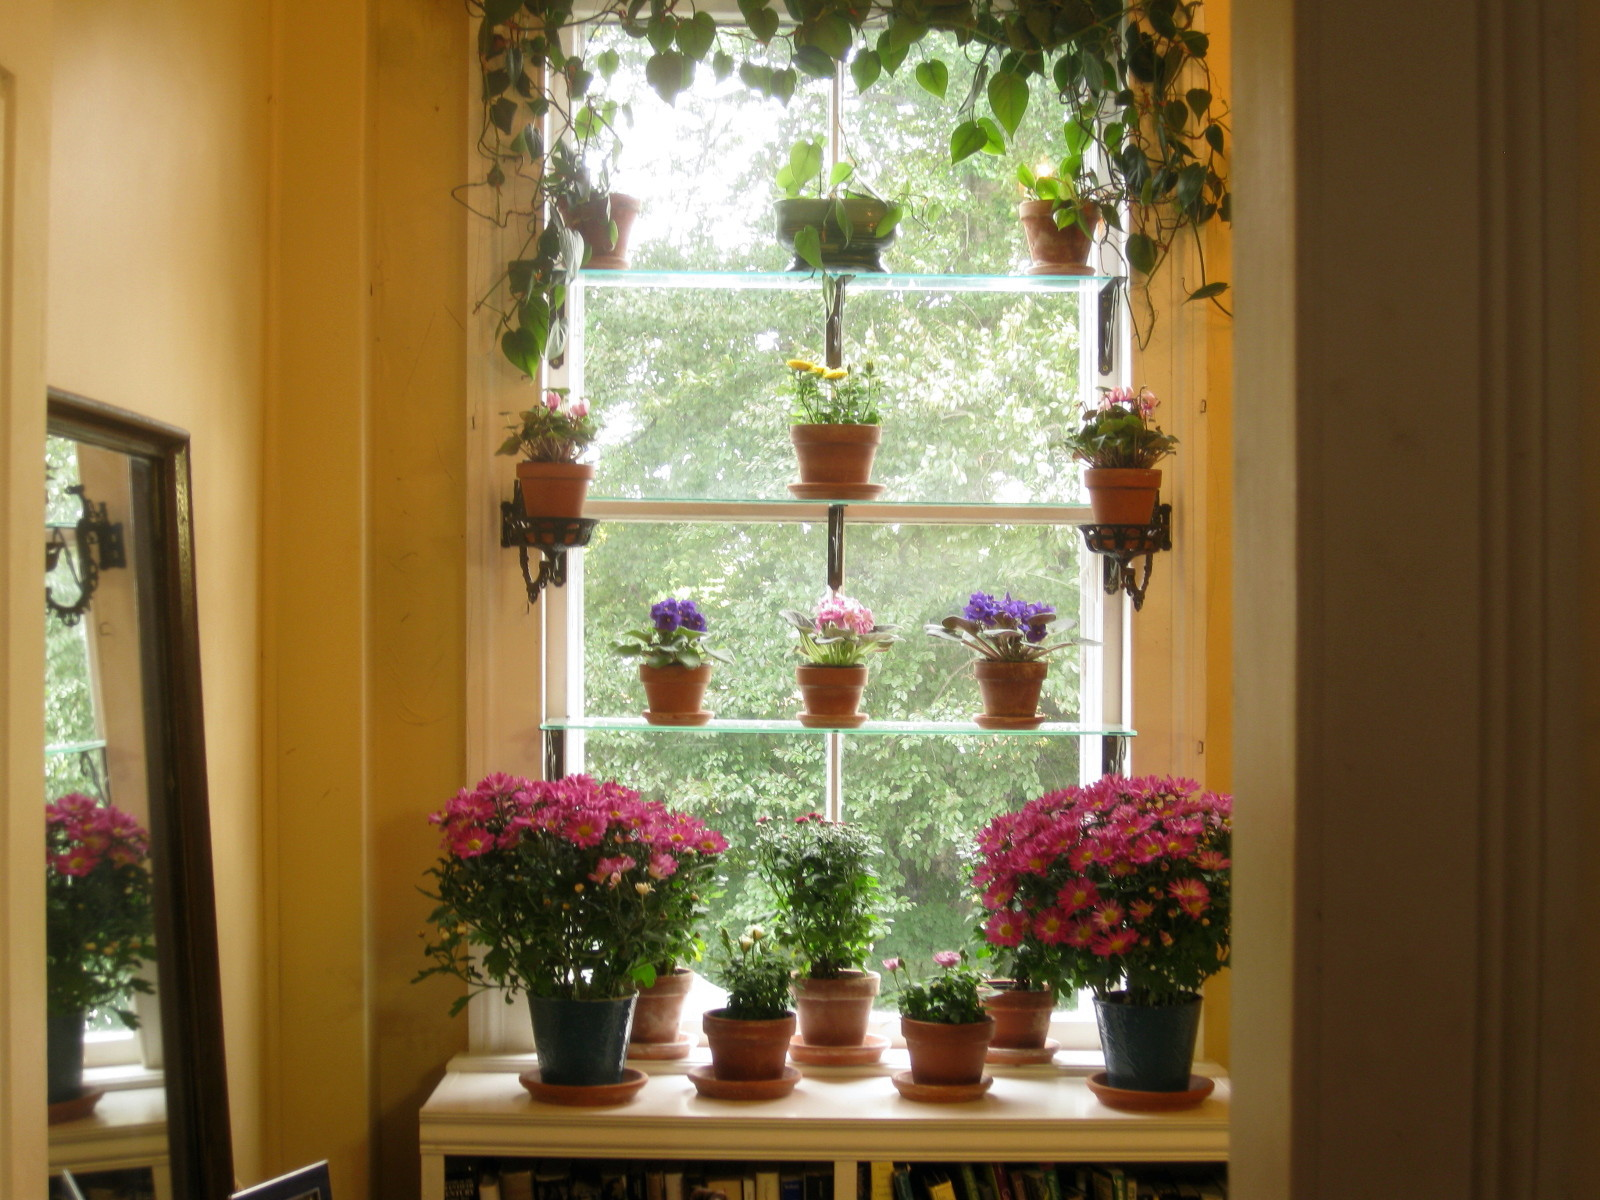 The Window Garden in Autumn